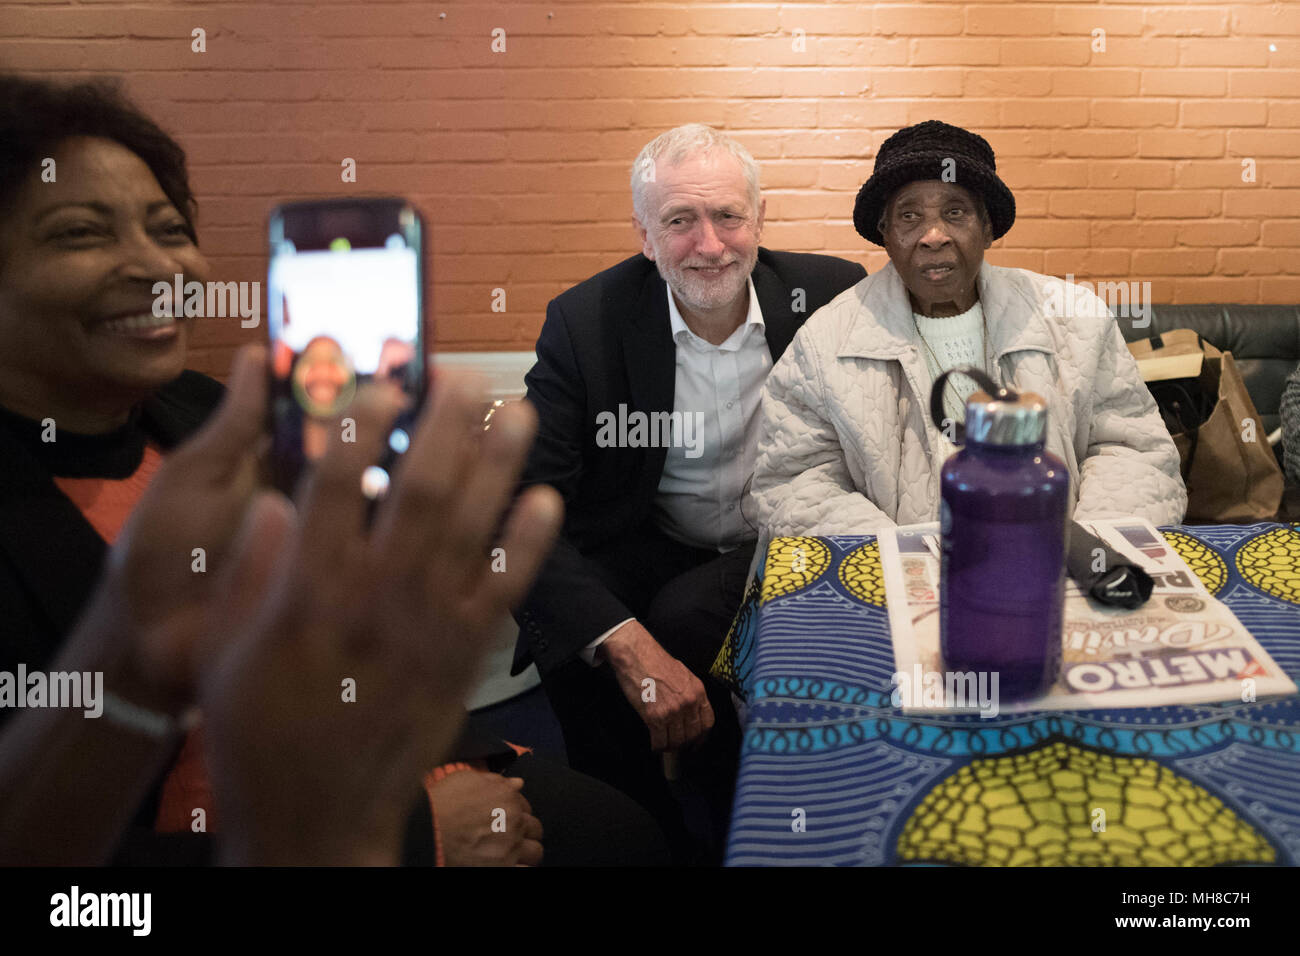 Labour leader Jeremy Corbyn meets people from the Caribbean and the West Indies, members of the Stockwell Good Neighbours community group, at the Oval House Theatre in Kennington, south London. - Stock Image